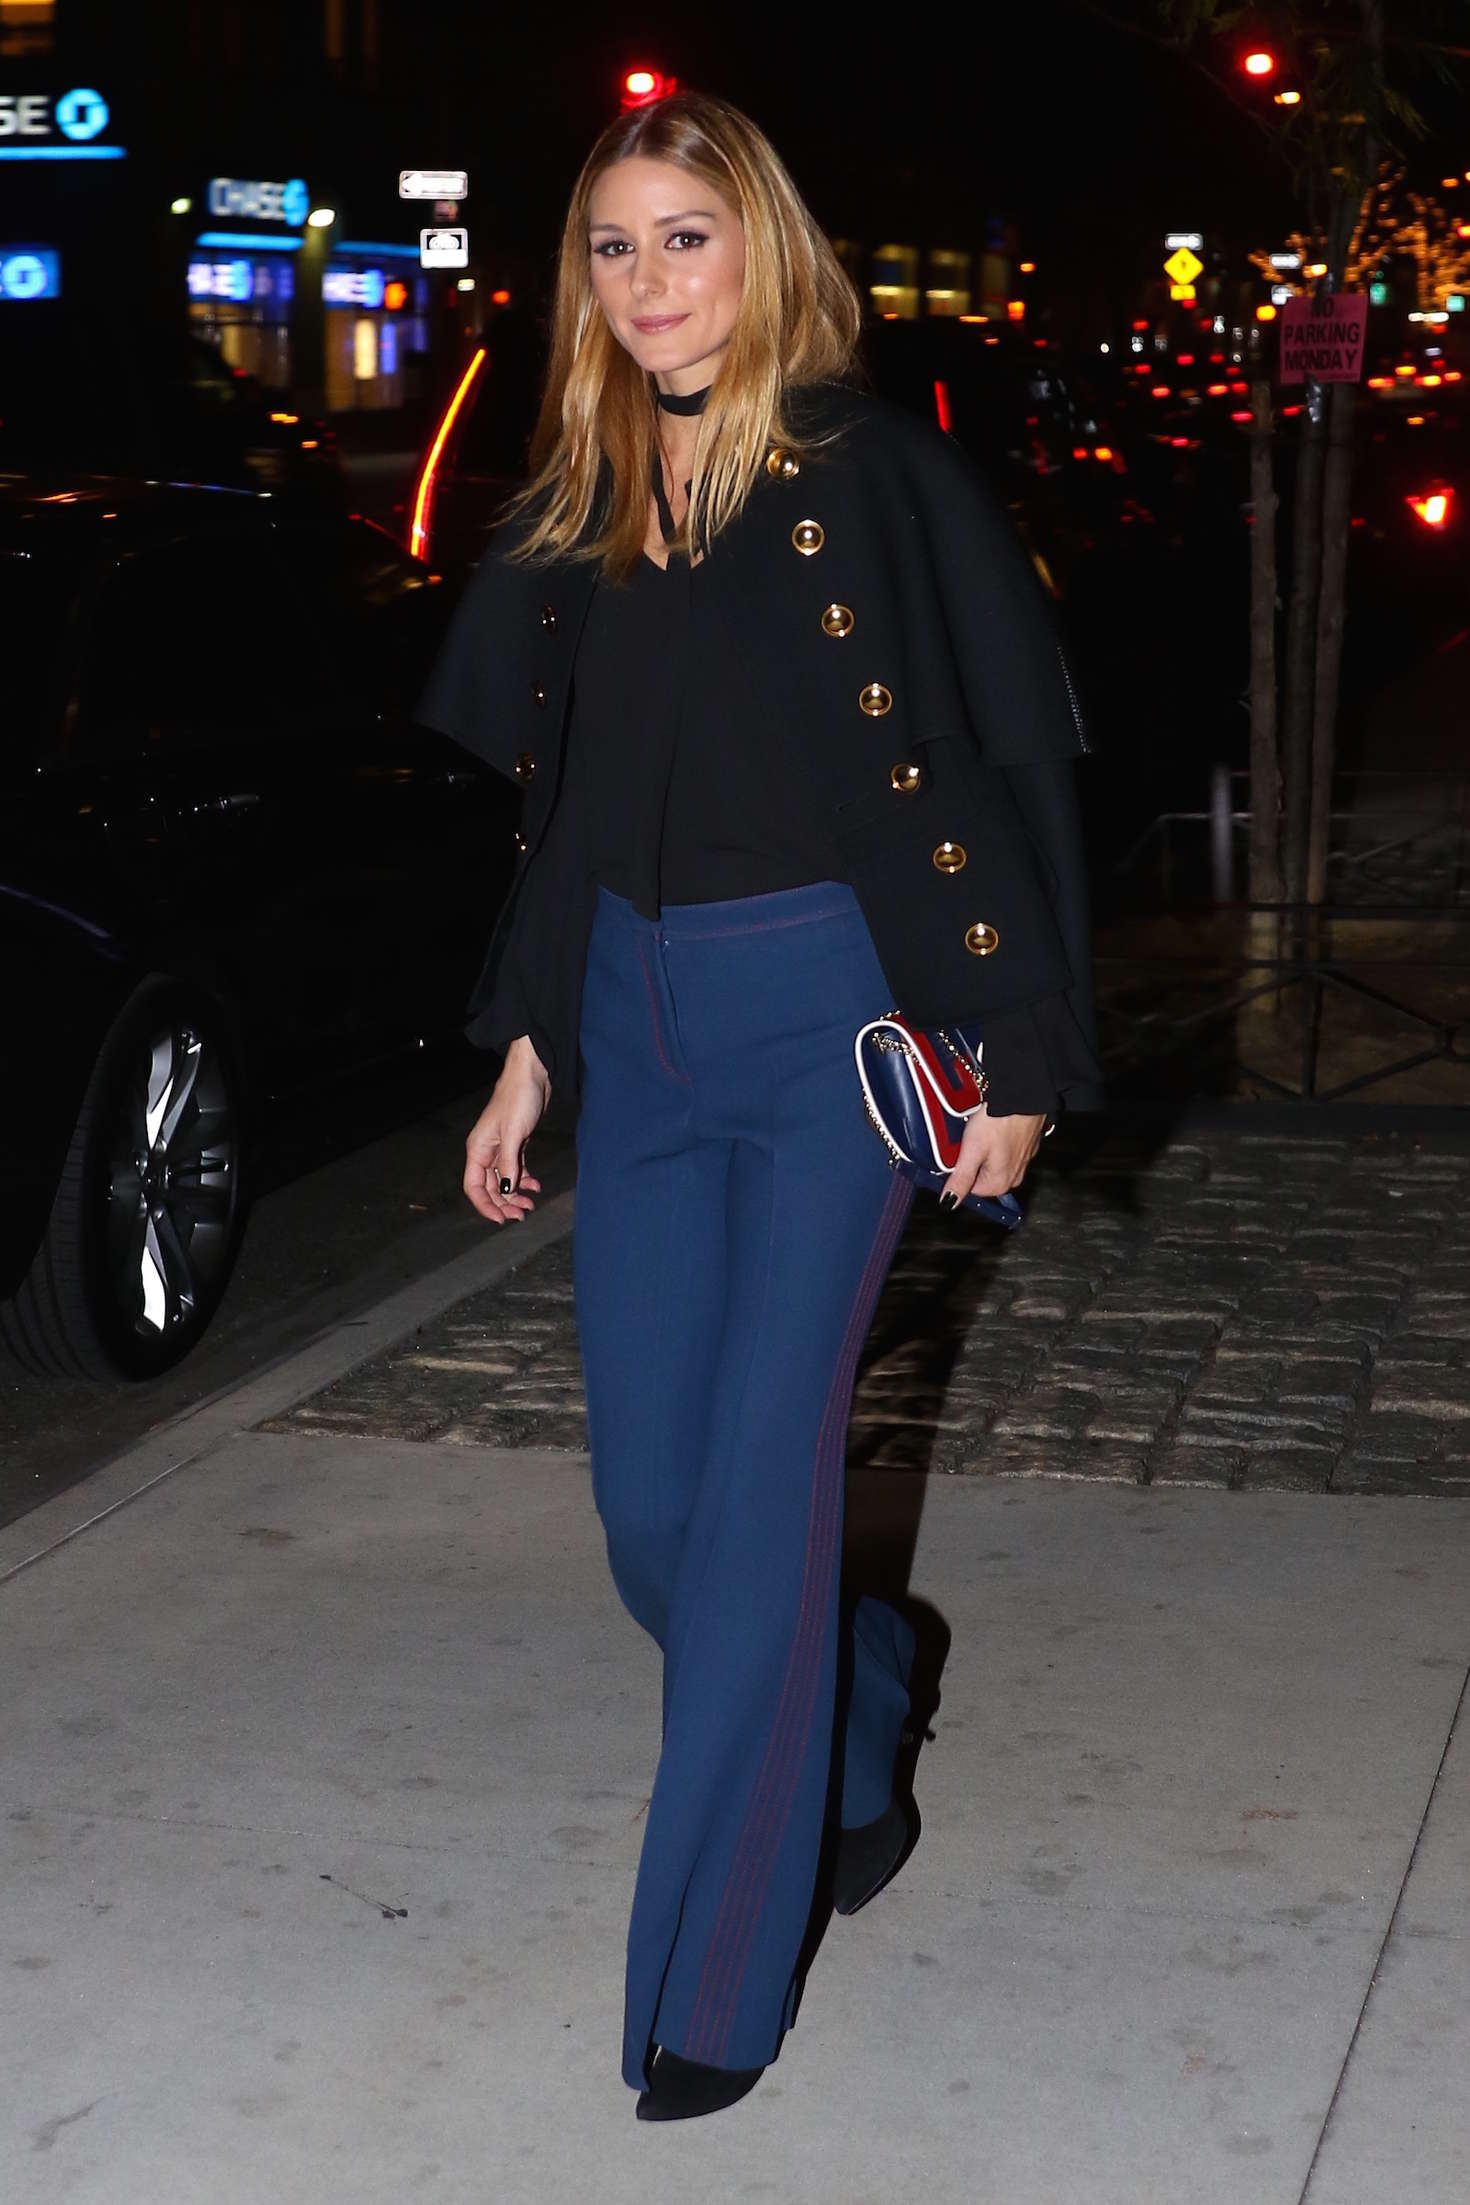 Olivia Palermo - Attends at Cadillac Event in New York